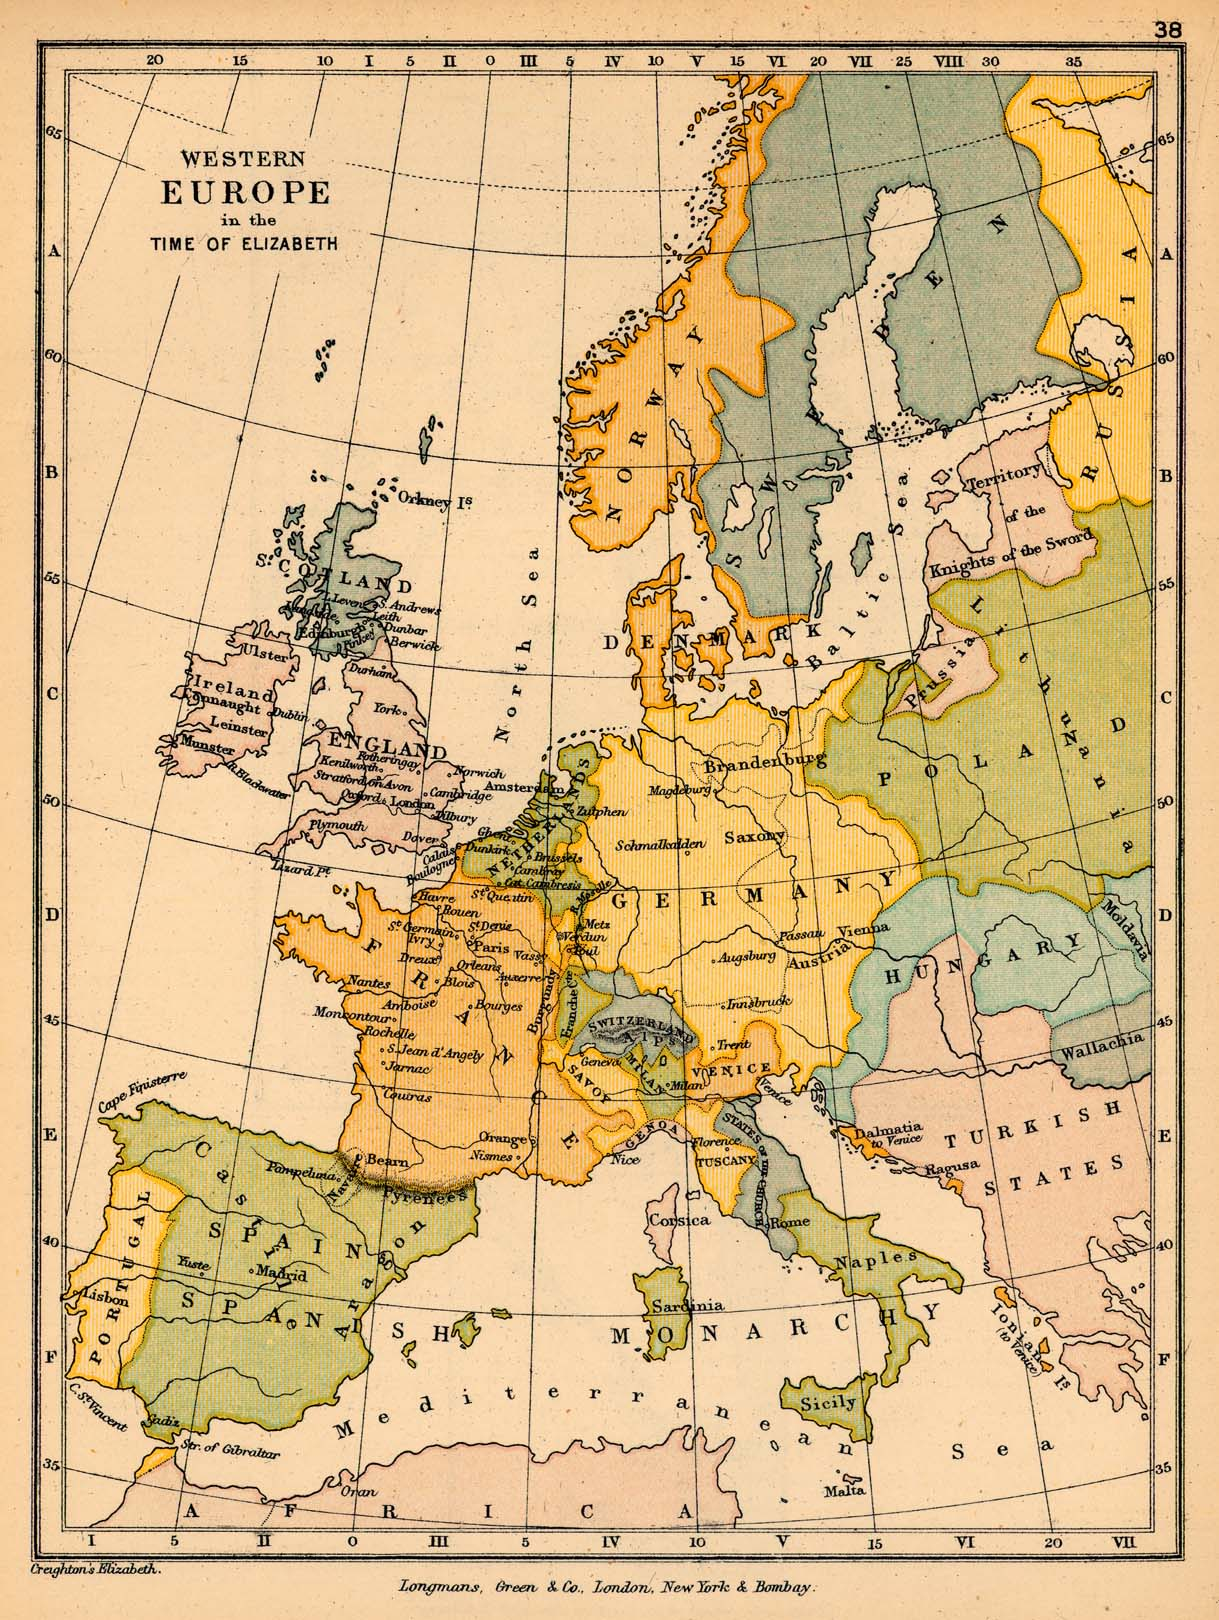 map 37 western europe in the time of elizabeth